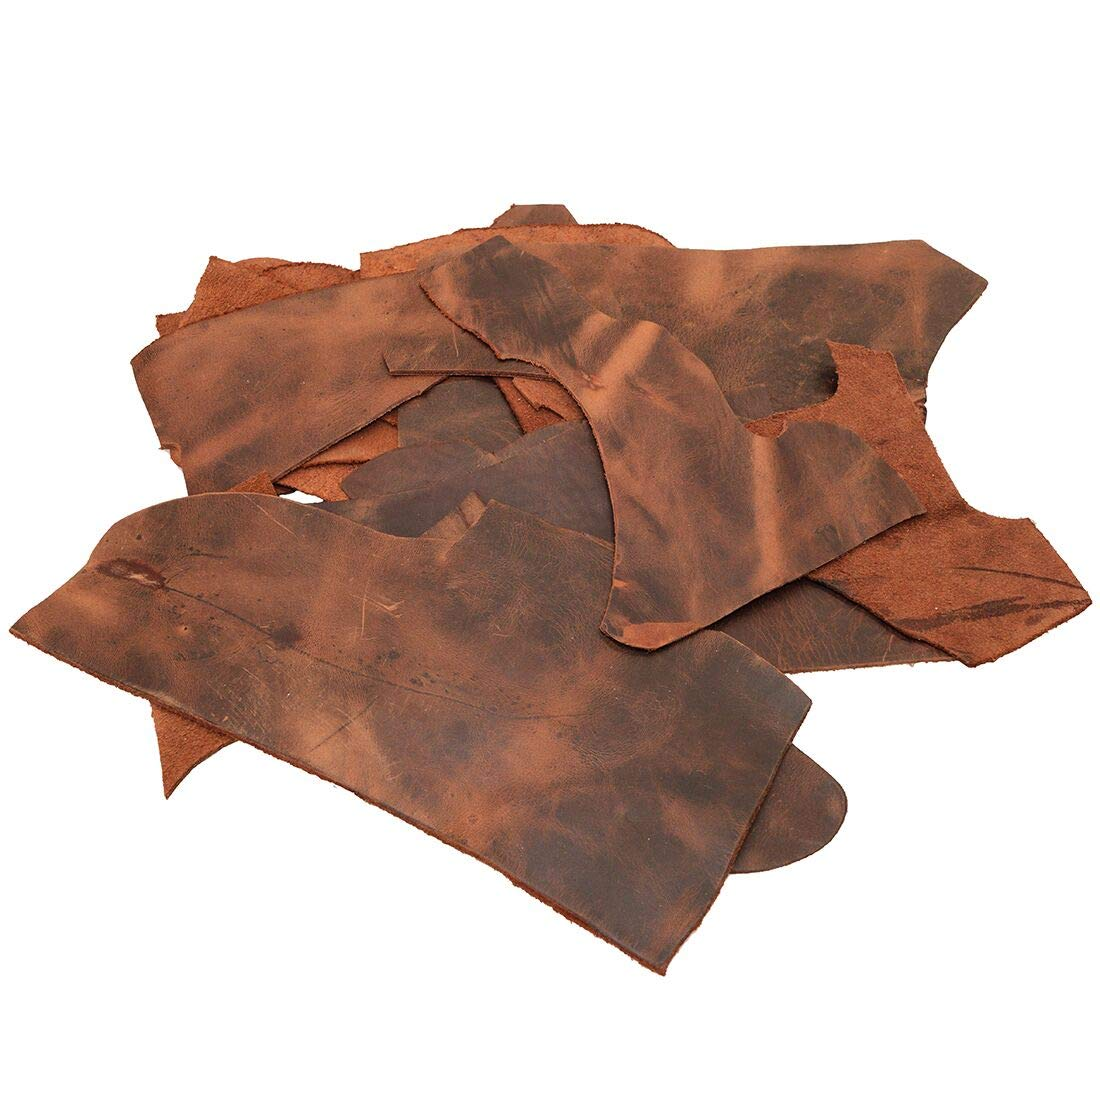 1.8mm Craft /& Workshop :: Old Tobacco Trimming Rustic Pieces 12 Ounce Cow Leather Chips /& Scraps Hide /& Drink